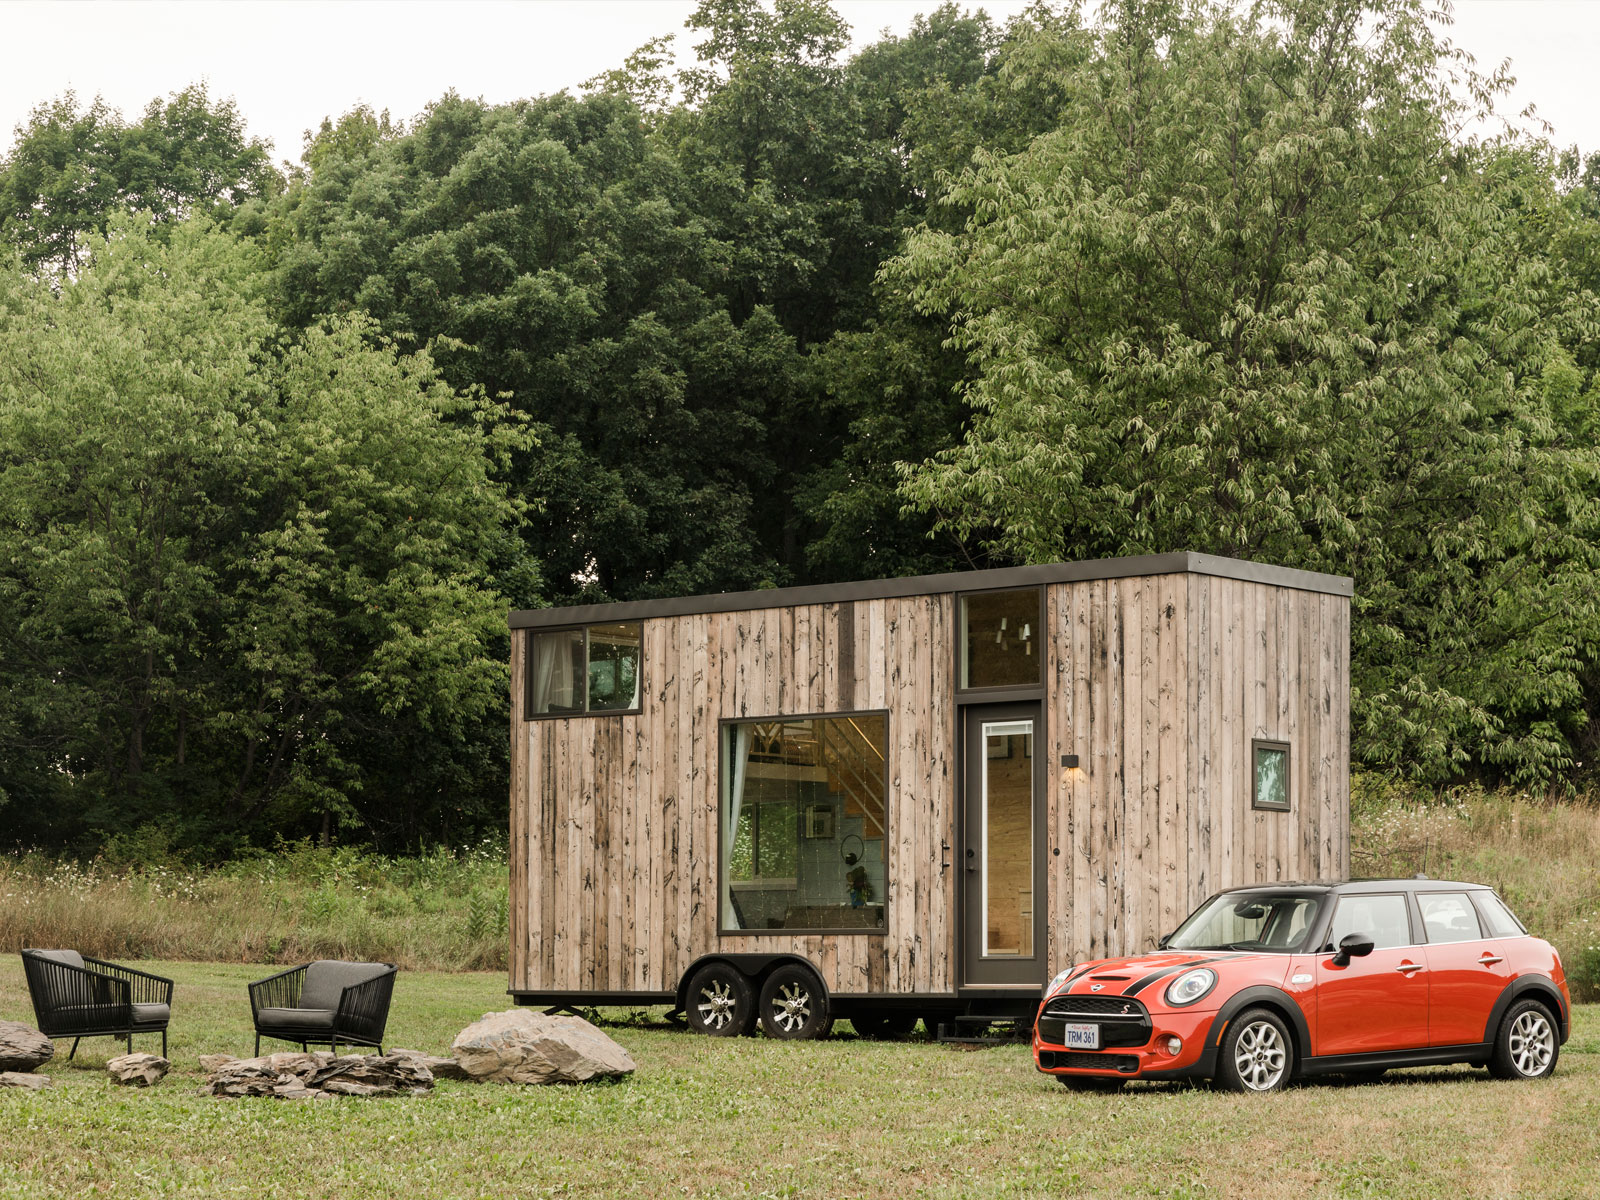 Mini cars and Airbnb offer weekend escape